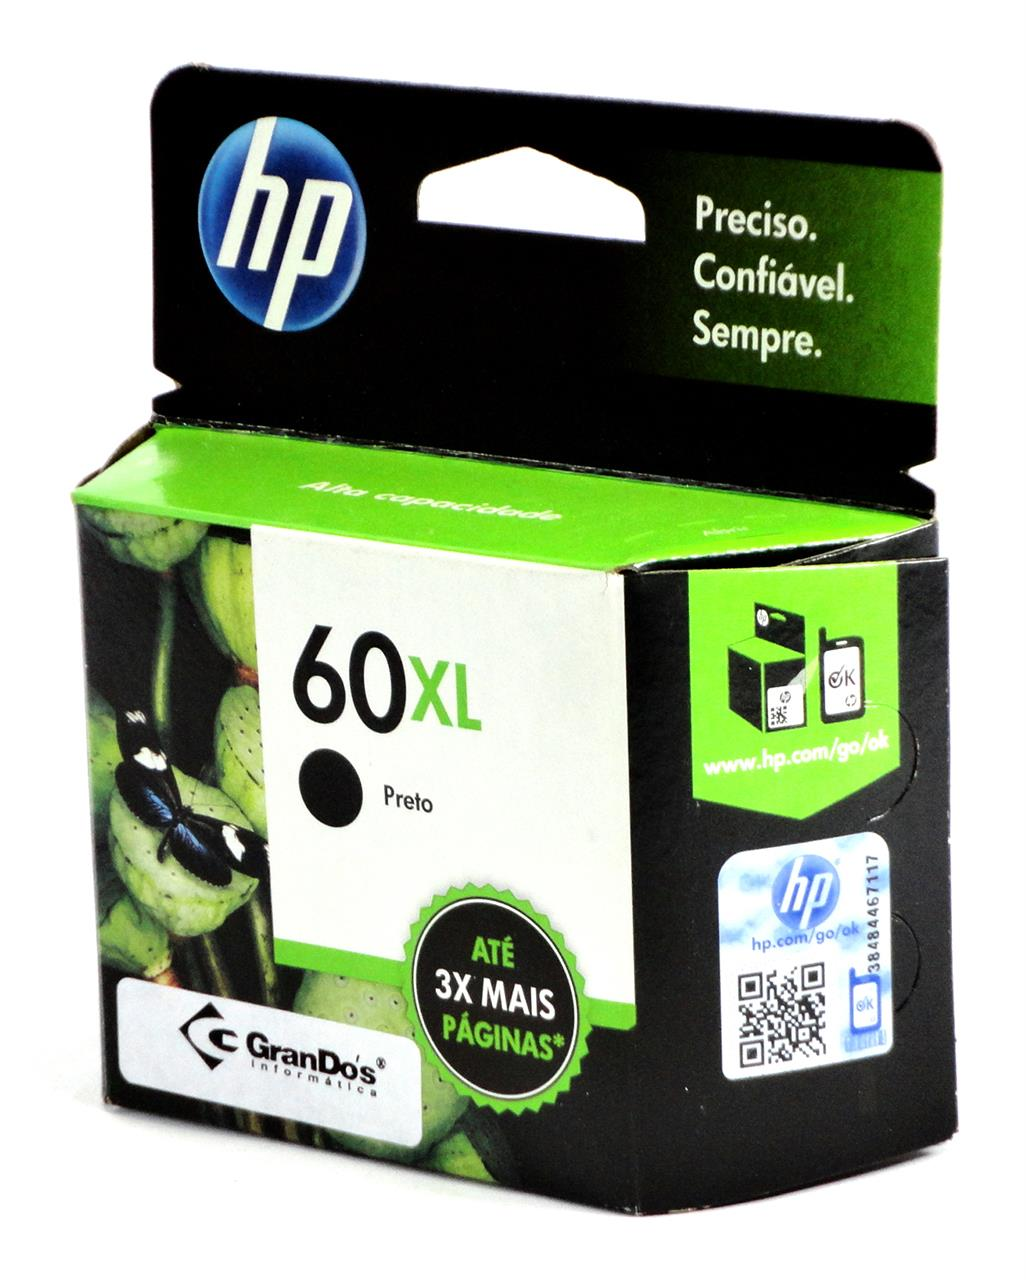 Cartucho Original HP 60XL Preto CC641WB